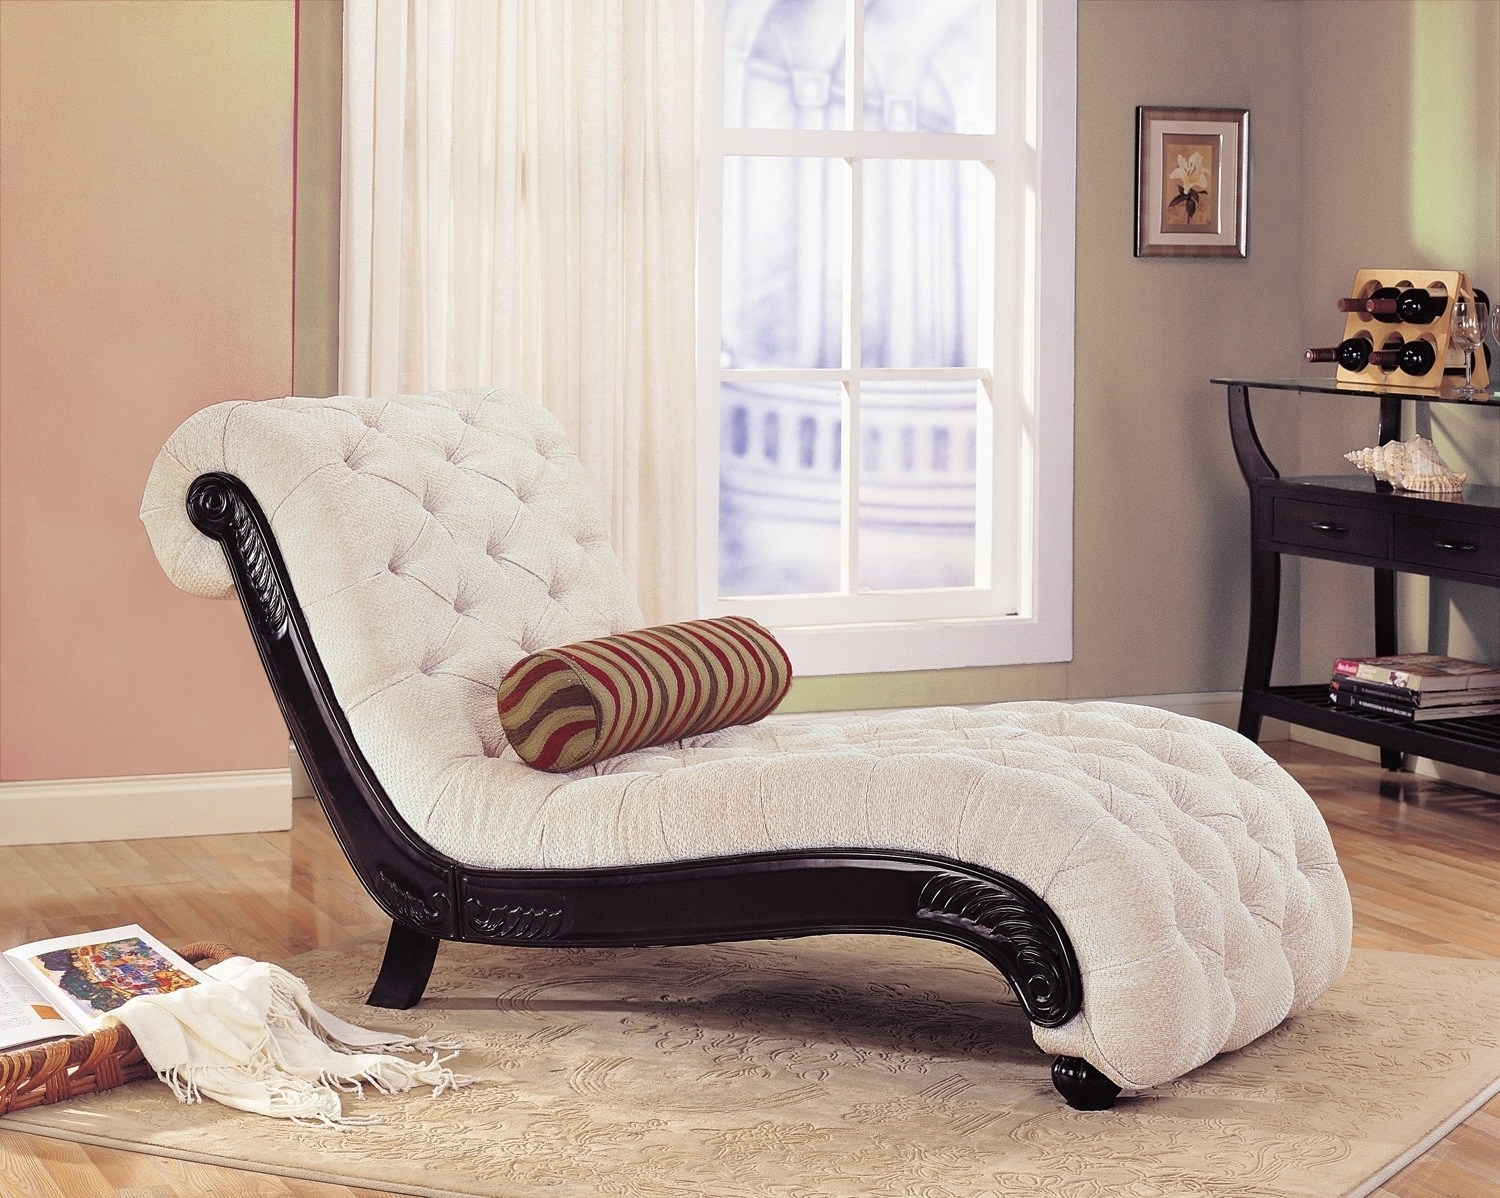 Home Design : 81 Appealing Modern Chaise Lounge Chairss Inside Preferred Chaises For Bedroom (View 5 of 15)